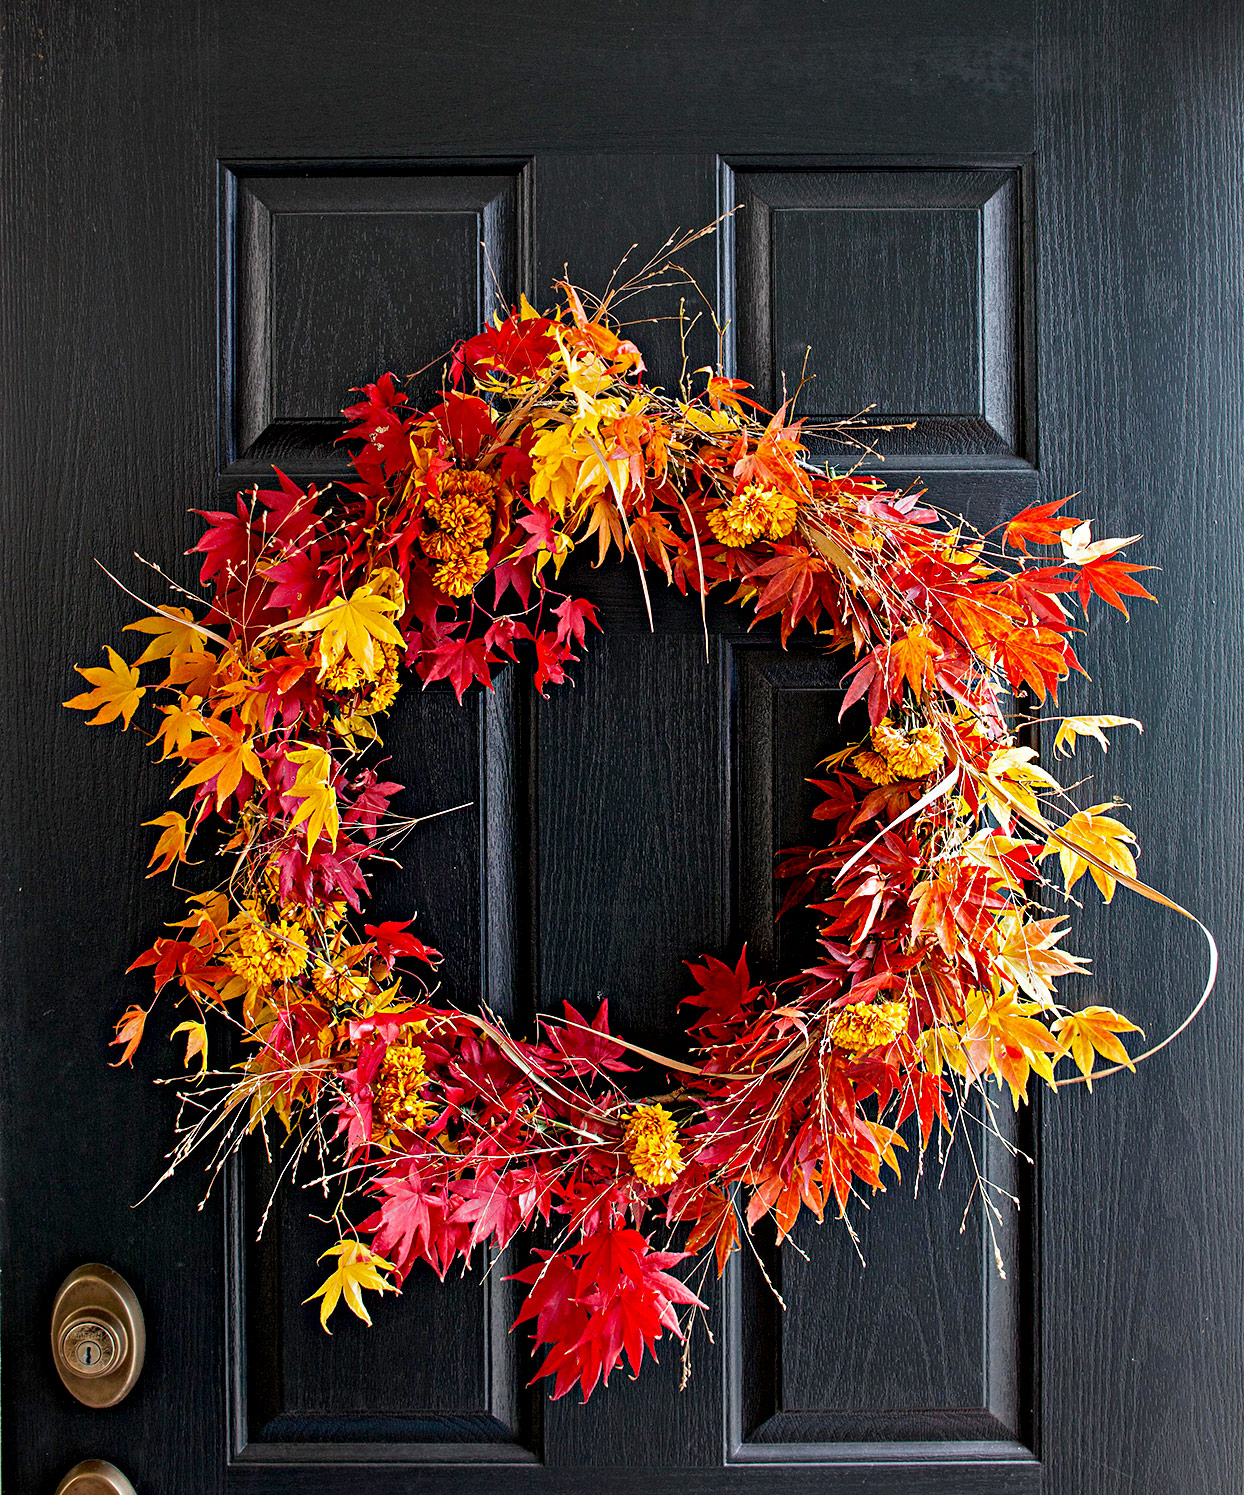 Wreath made of fall leaves